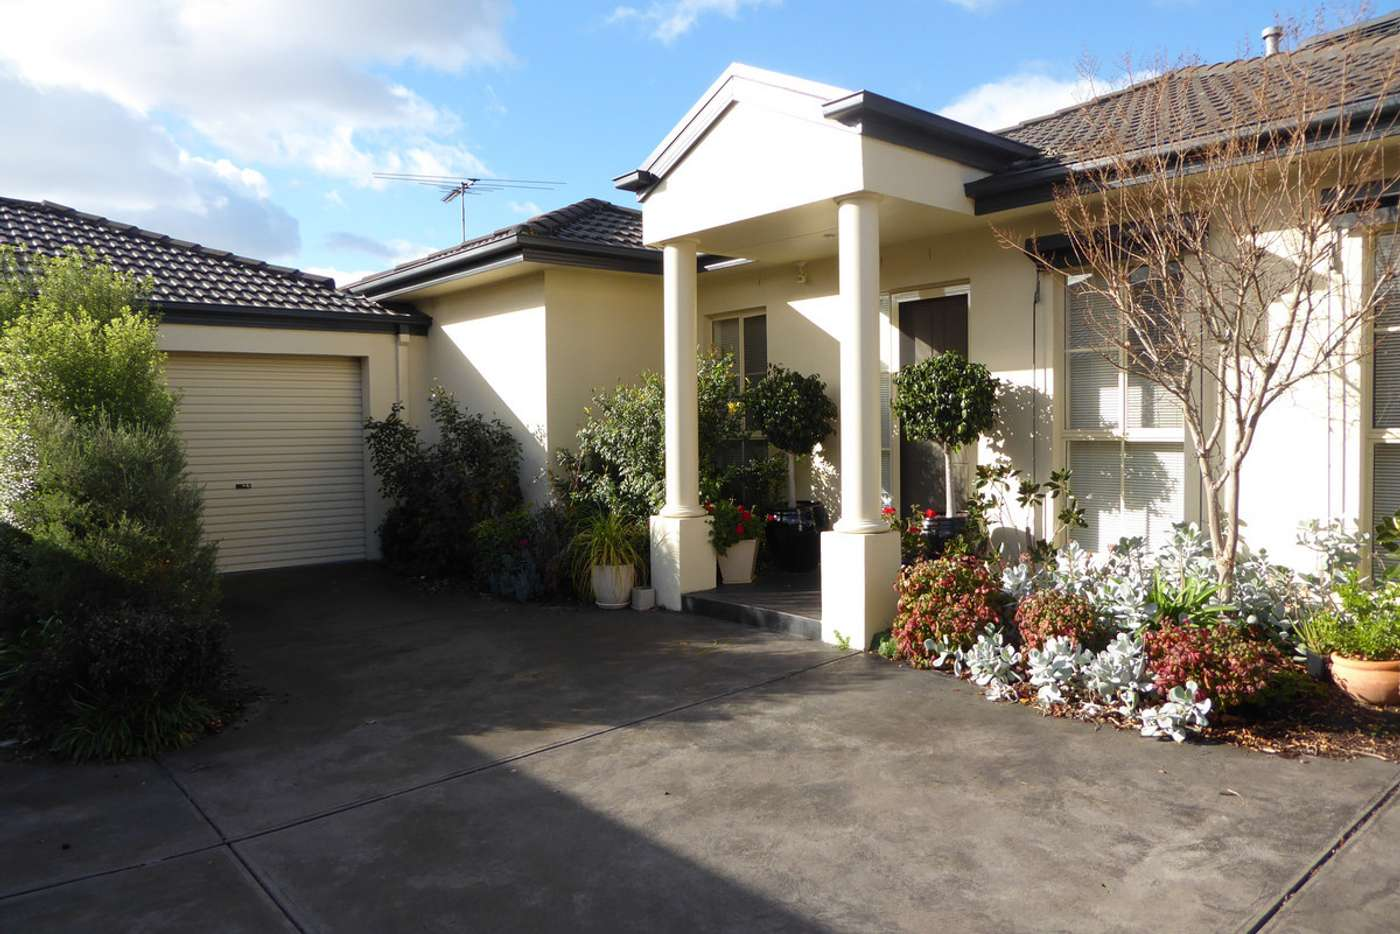 Main view of Homely unit listing, 3/100 Maxwell Street, Mornington VIC 3931